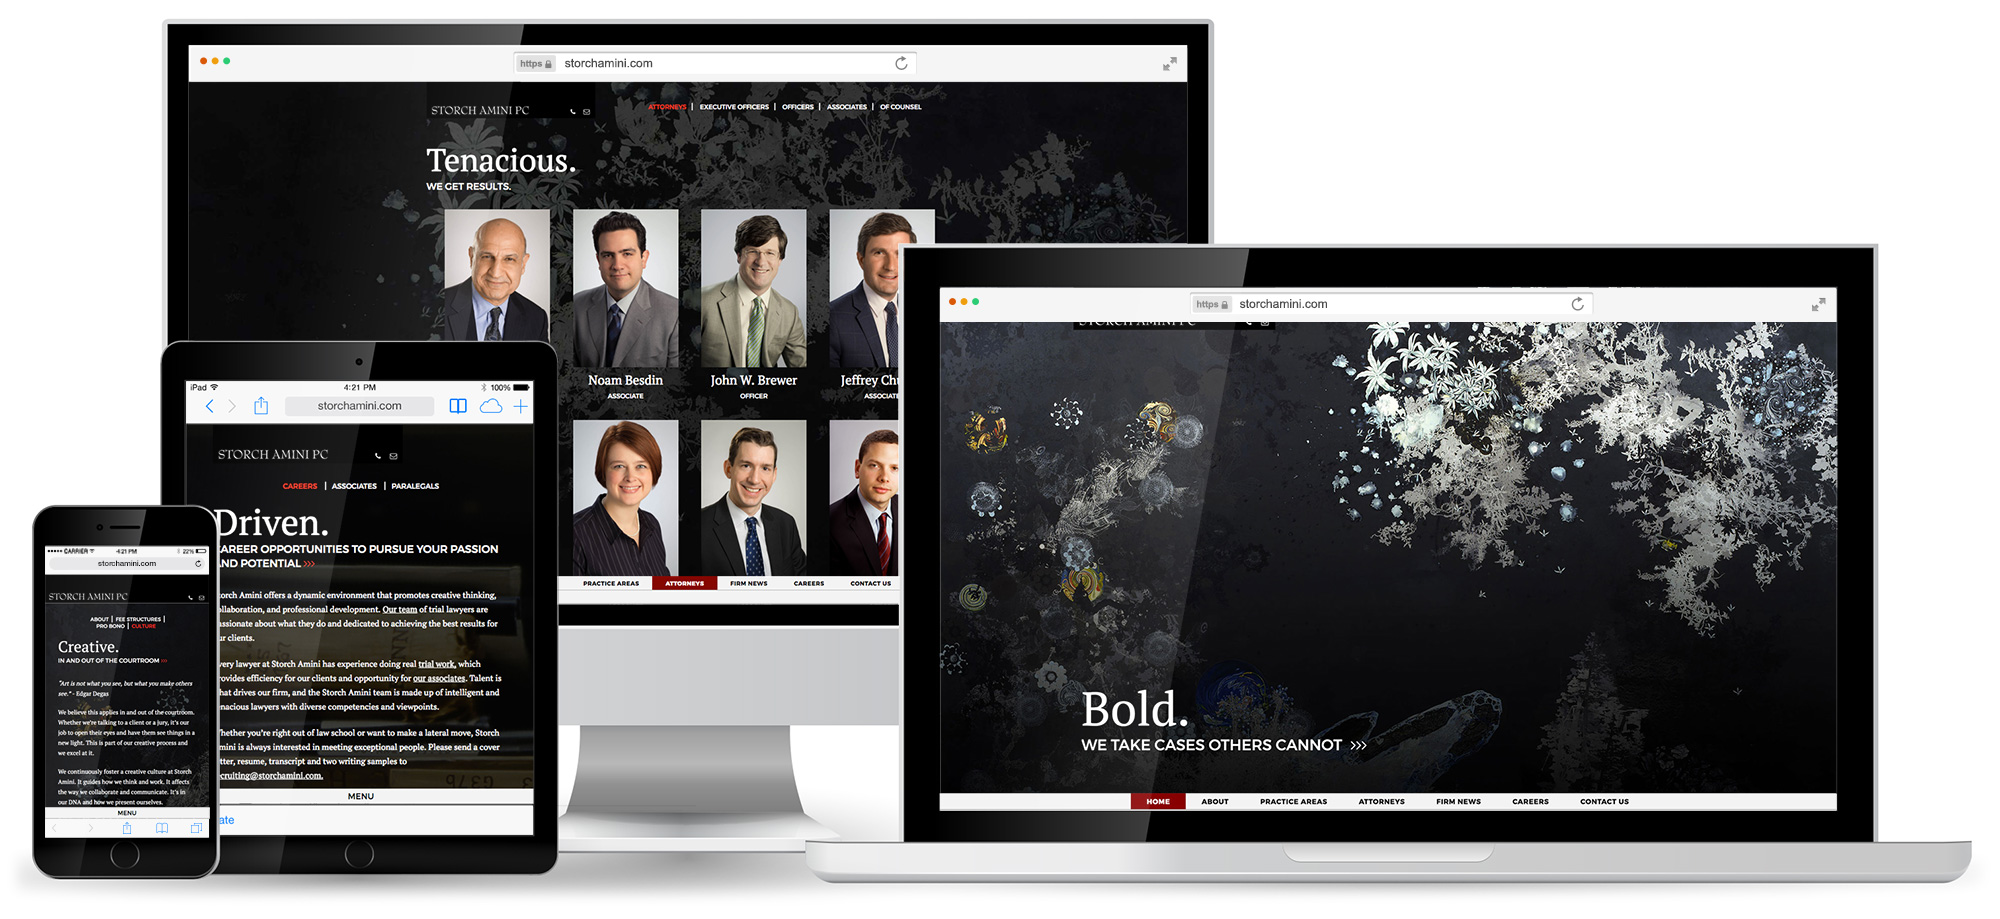 Storch Amini PC Custom WordPress Website Design